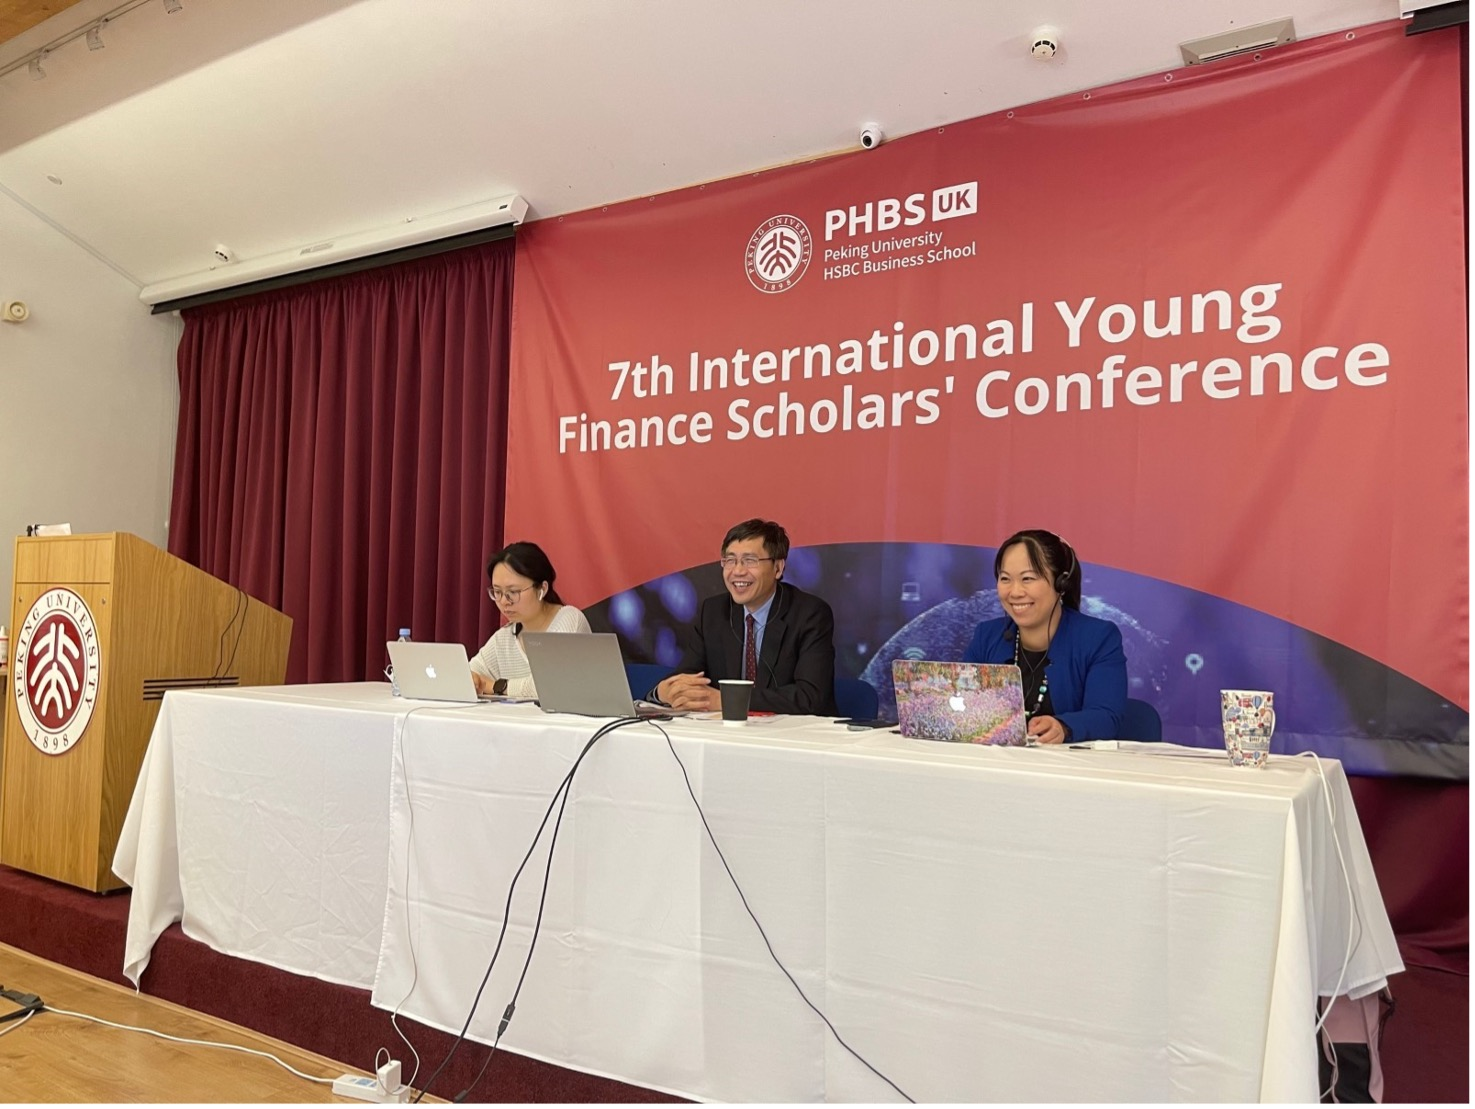 7th International Young Finance Scholars Conference 12-13 July 2021